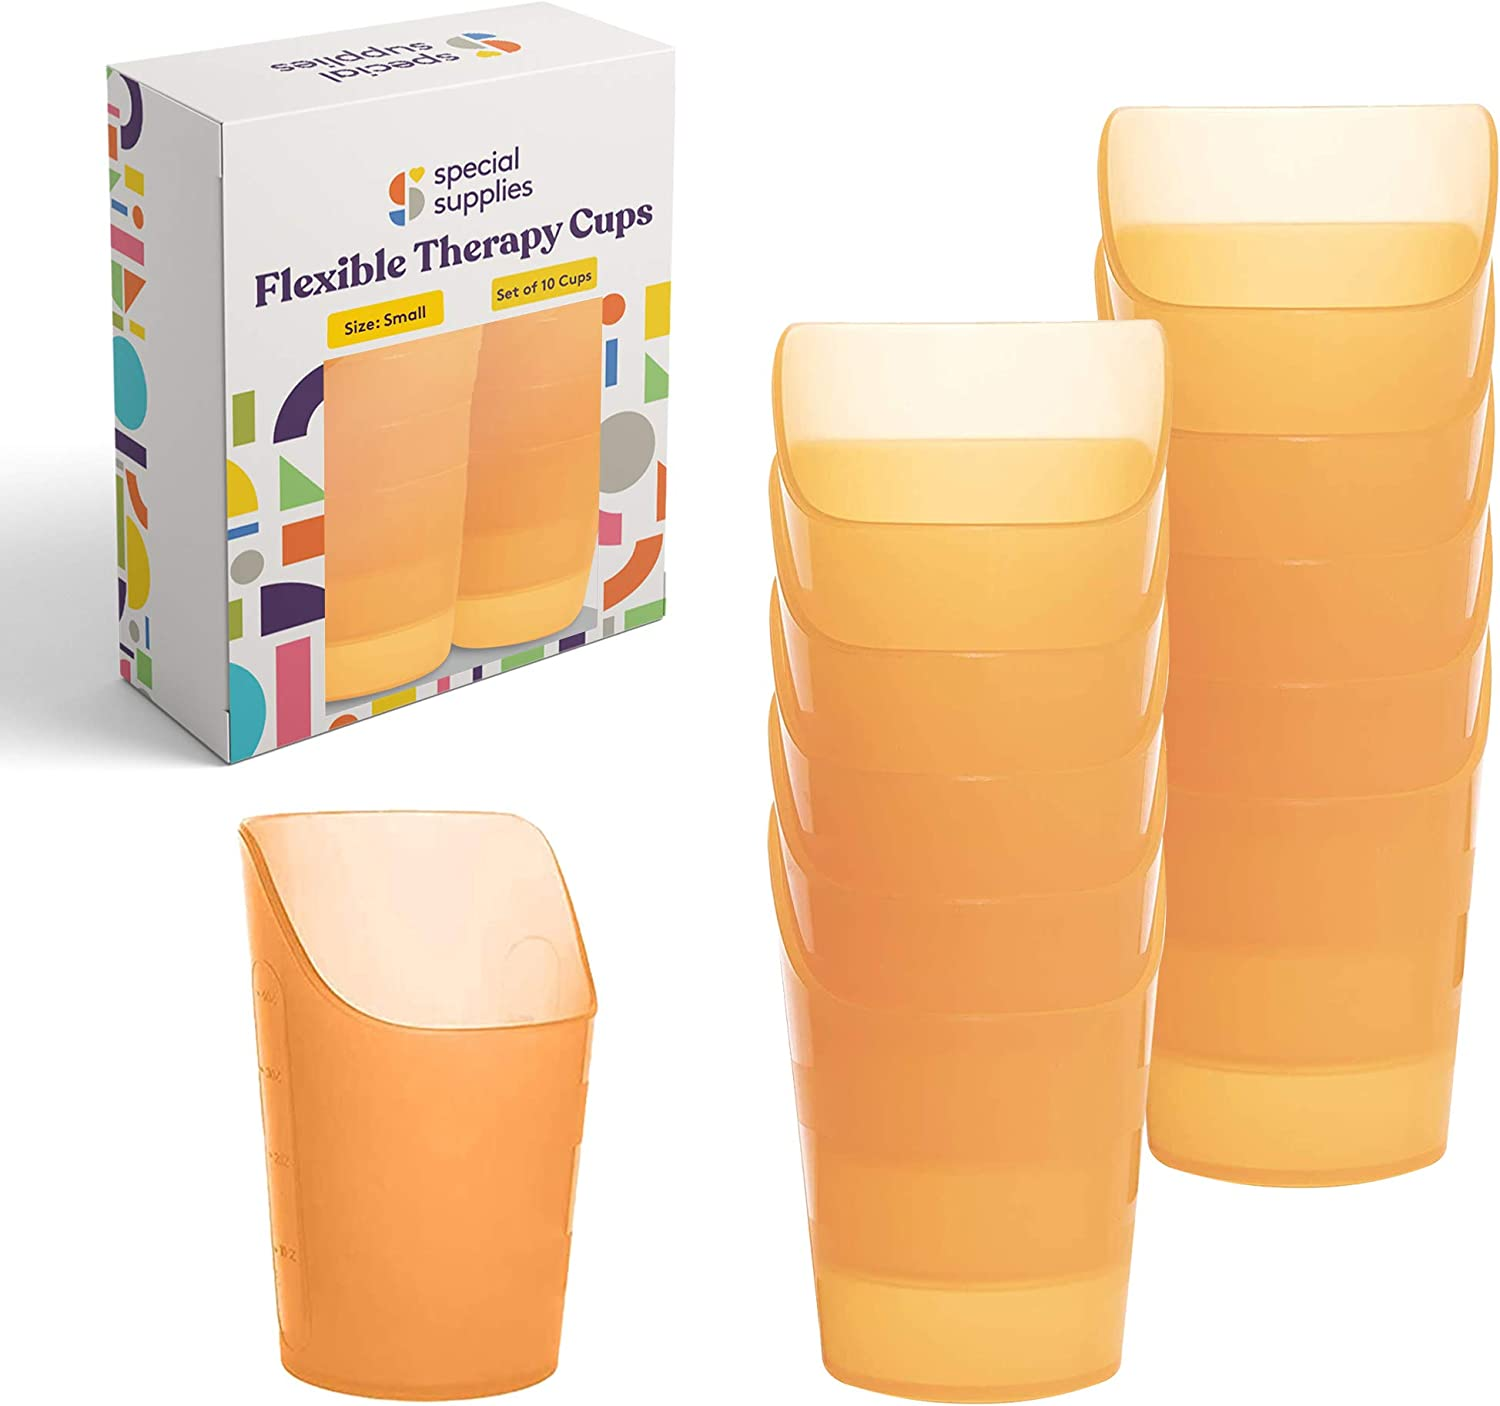 Special Supplies Pack of 10 Small Flexible Drinking Cups with Nose Mold Cutout for Physical Therapy, Recovery, and Rehabilitation, BPA-Free Drink Tumblers, 3 oz.